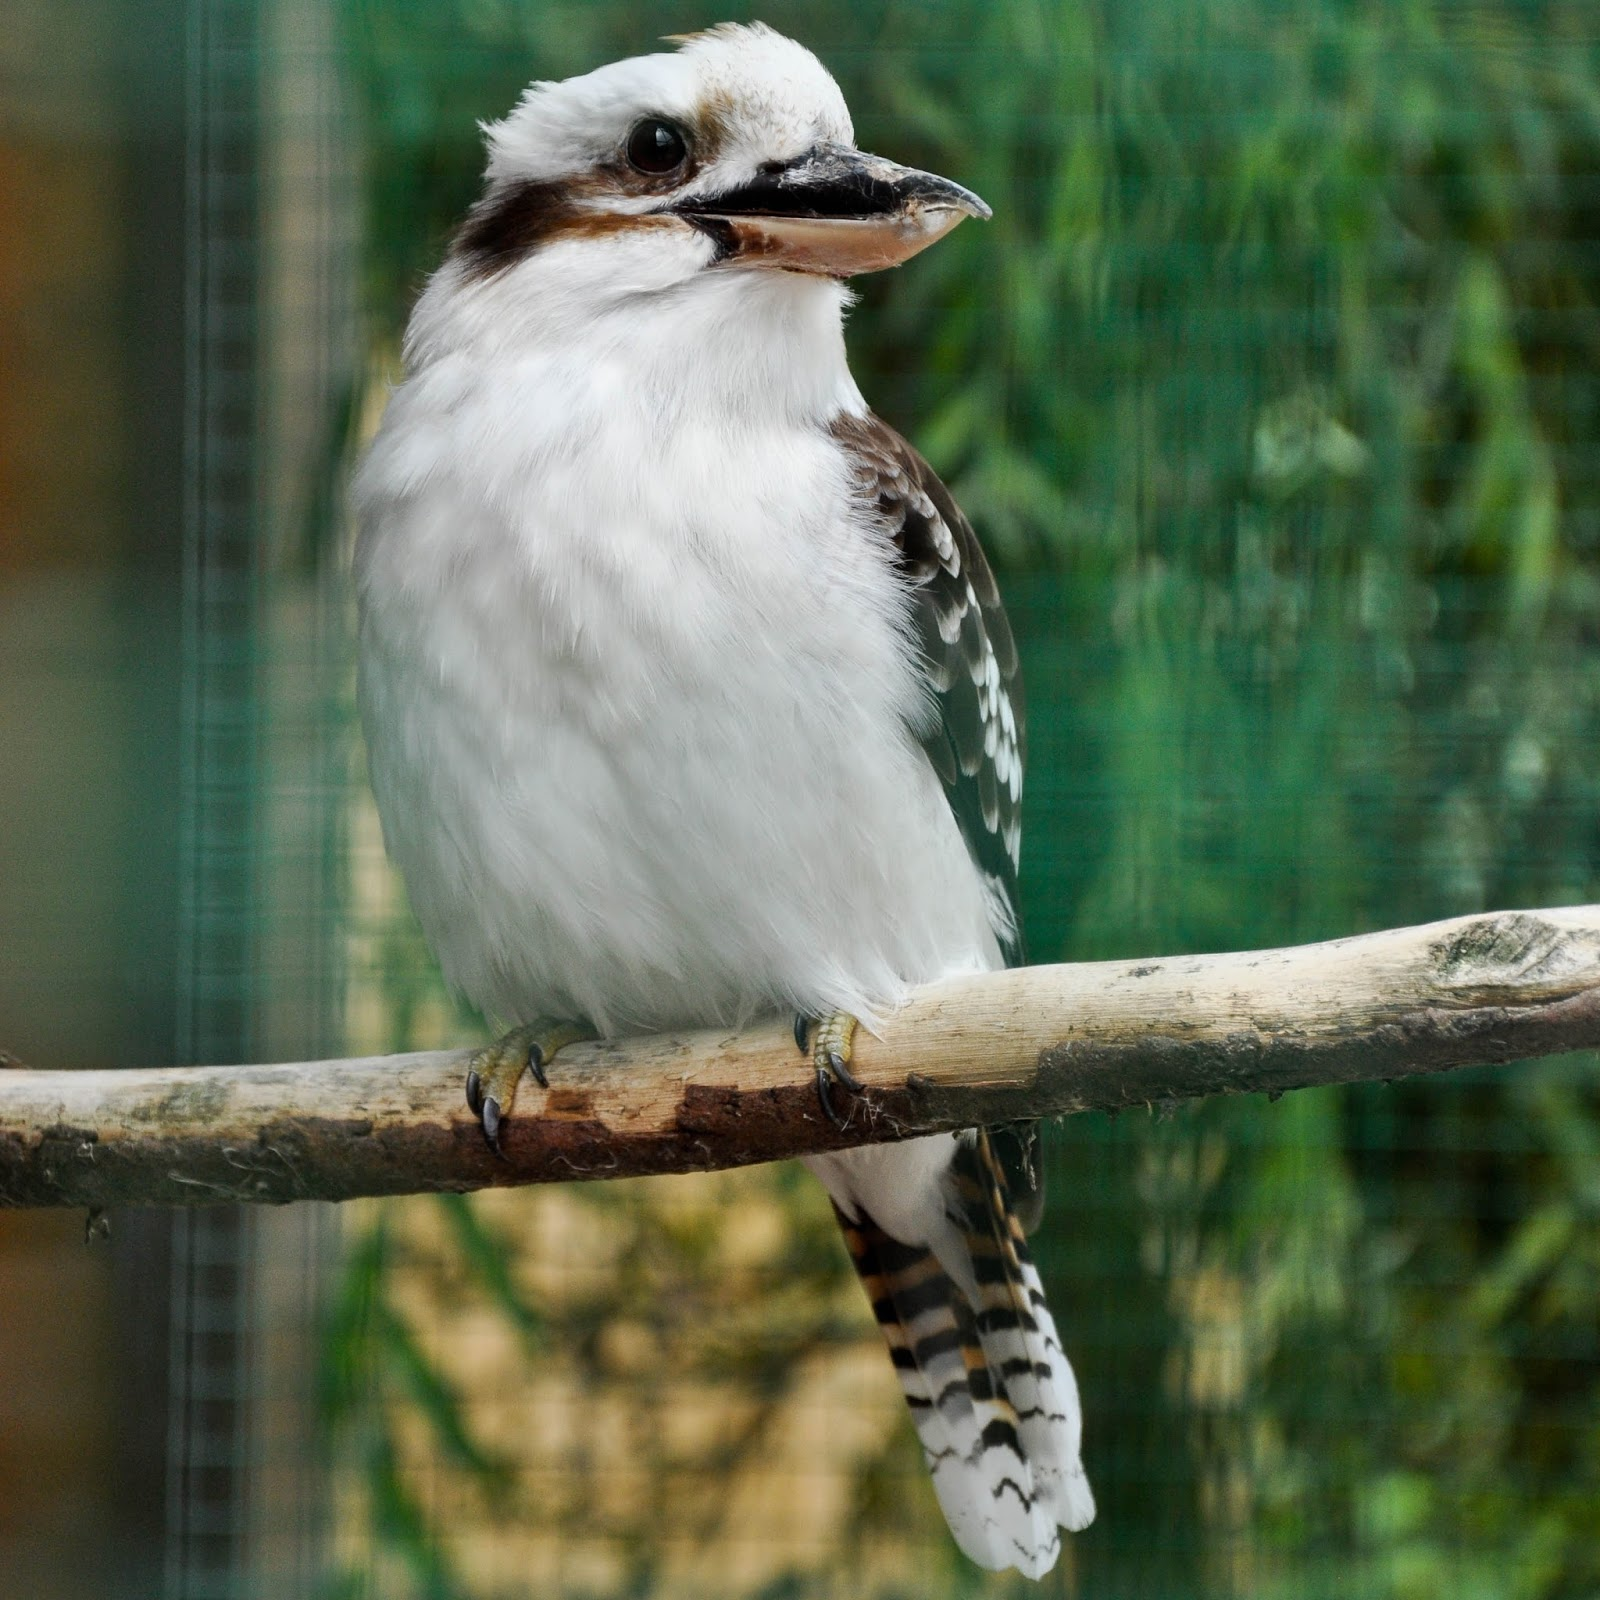 Kookaburra, Monkey Haven, Isle of Wight, UK